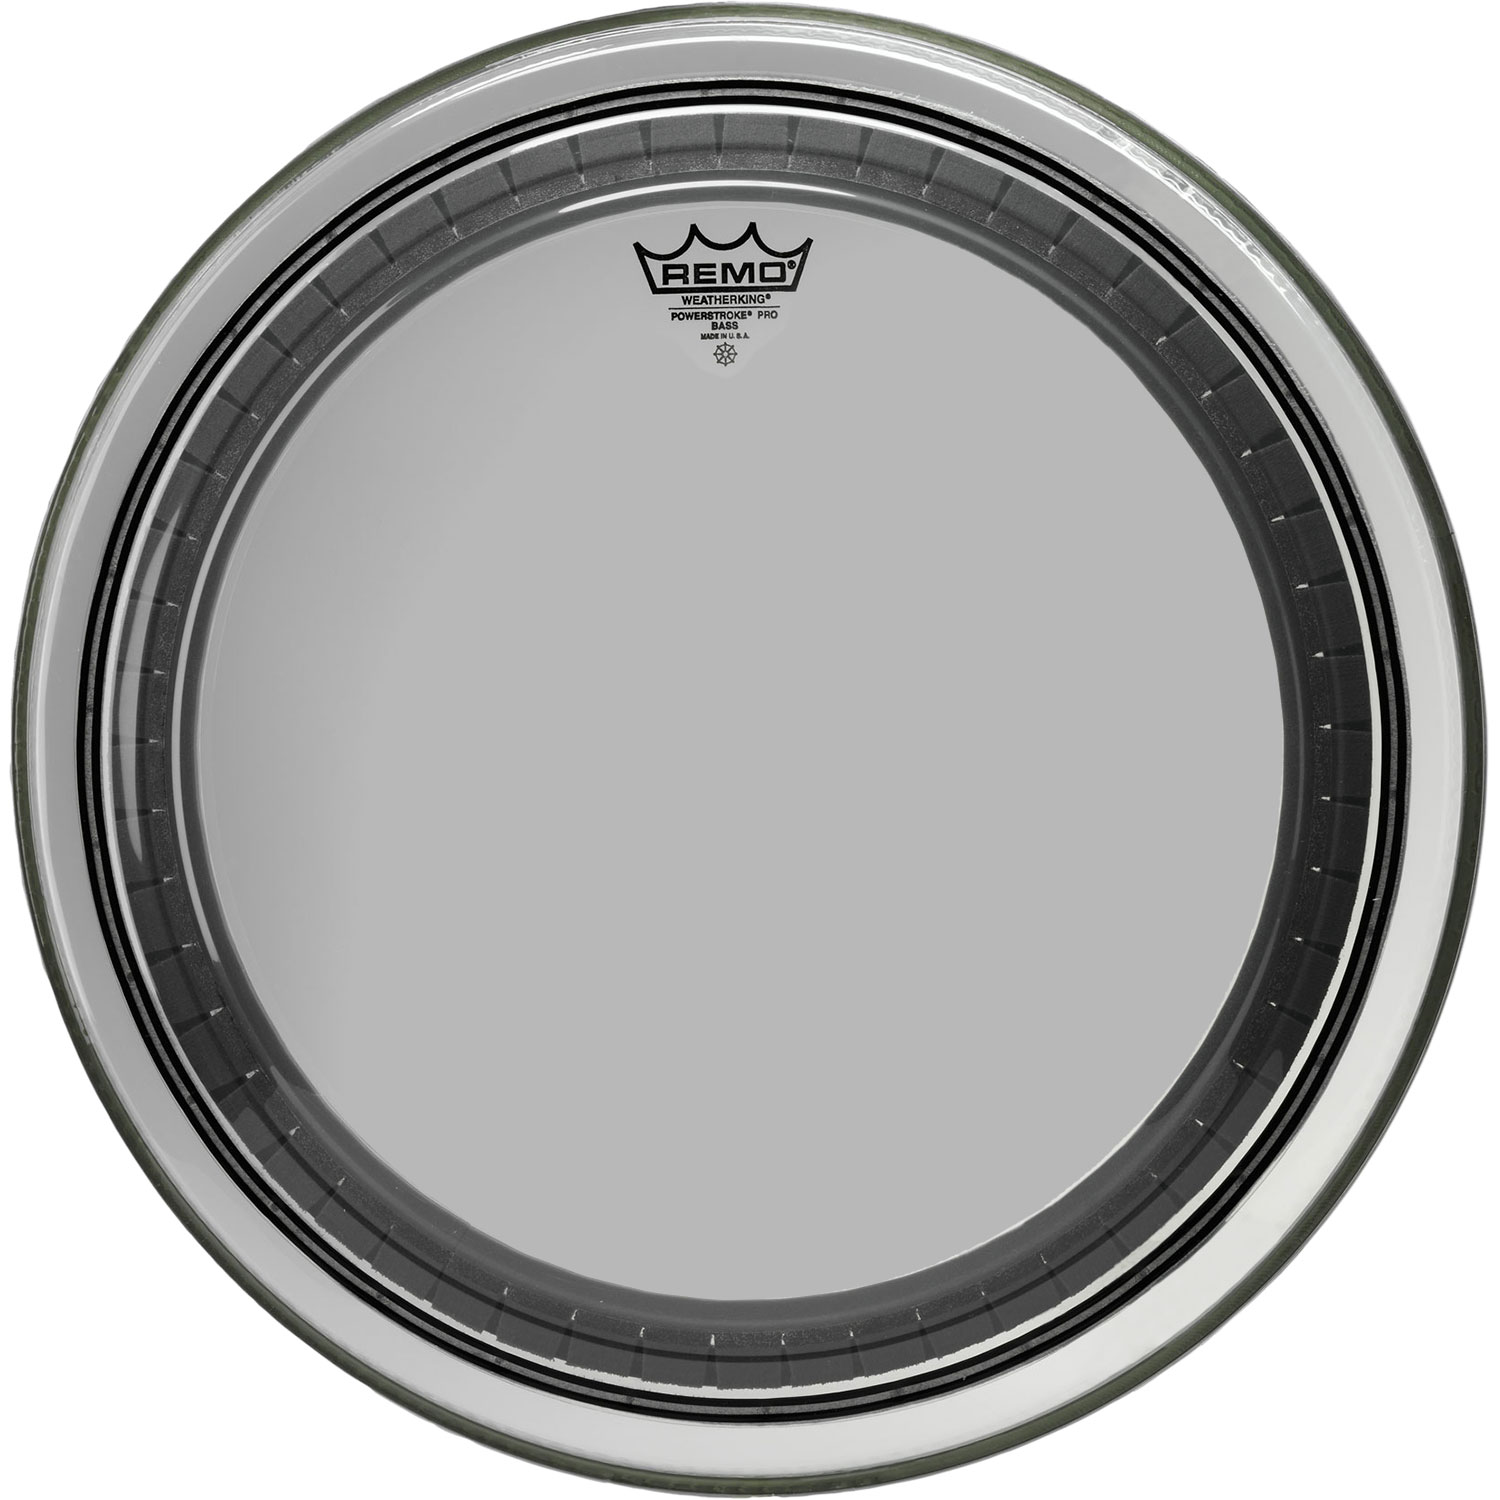 "Remo 18"" Powerstroke Pro Clear Bass Drum Head"